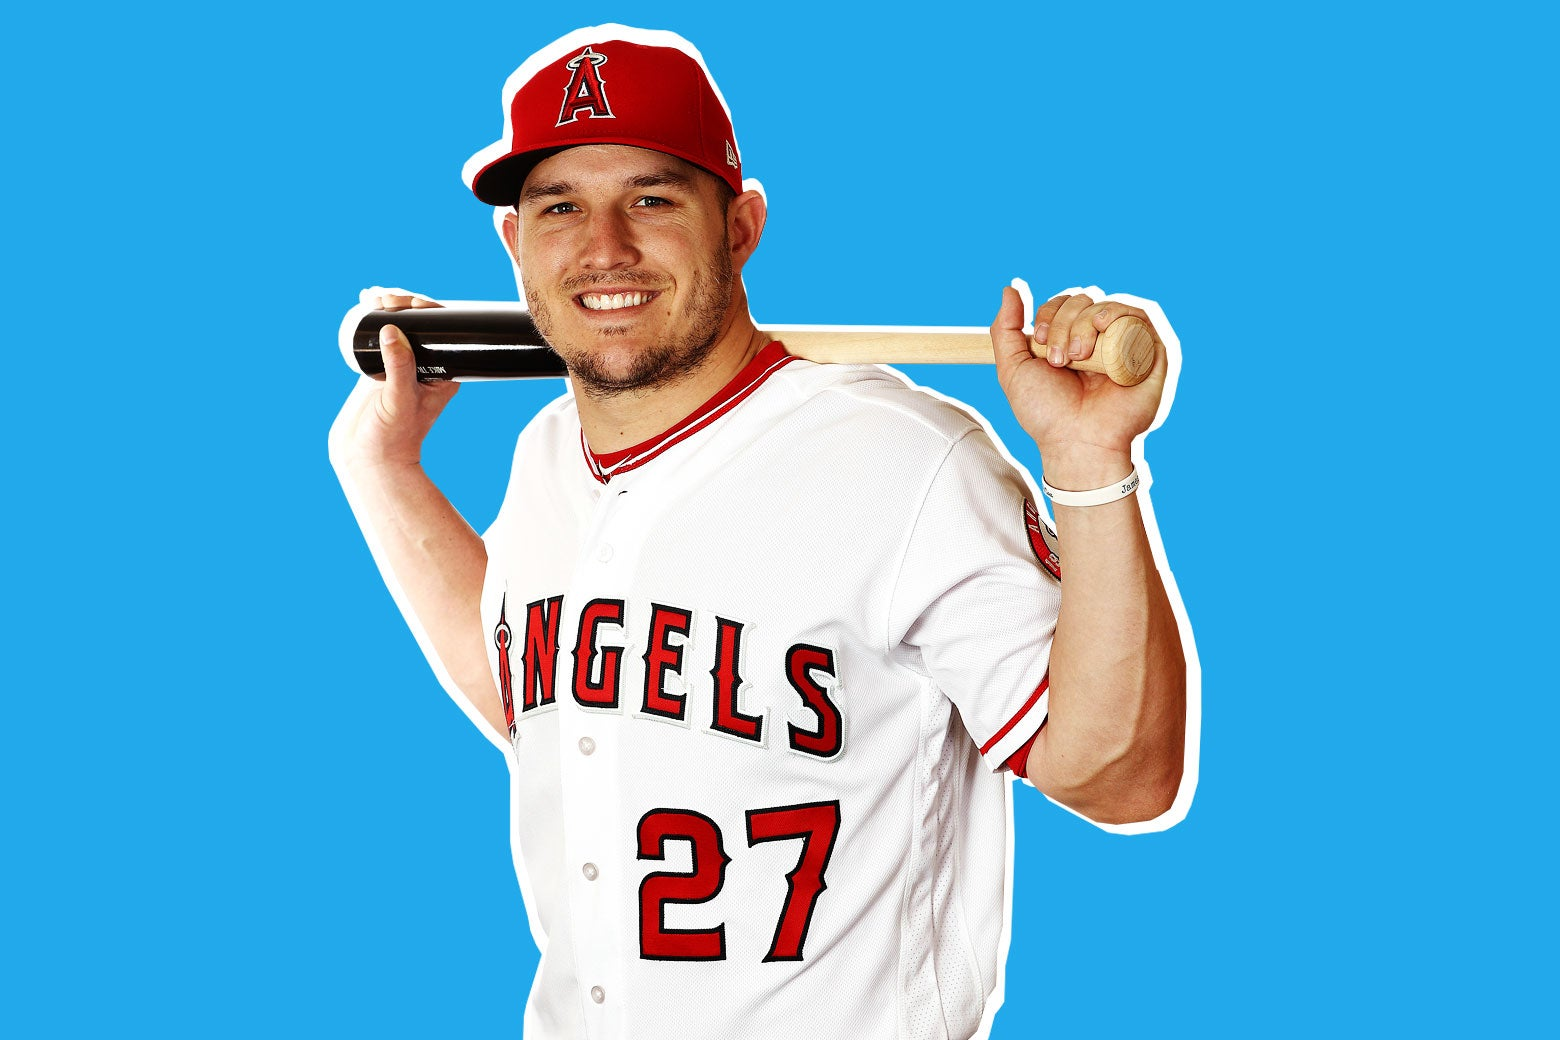 Photo illustration of Mike Trout, No. 27 for the Los Angeles Angels, posing with a baseball bat slung over the back of his shoulders while he smiles winningly at the camera.